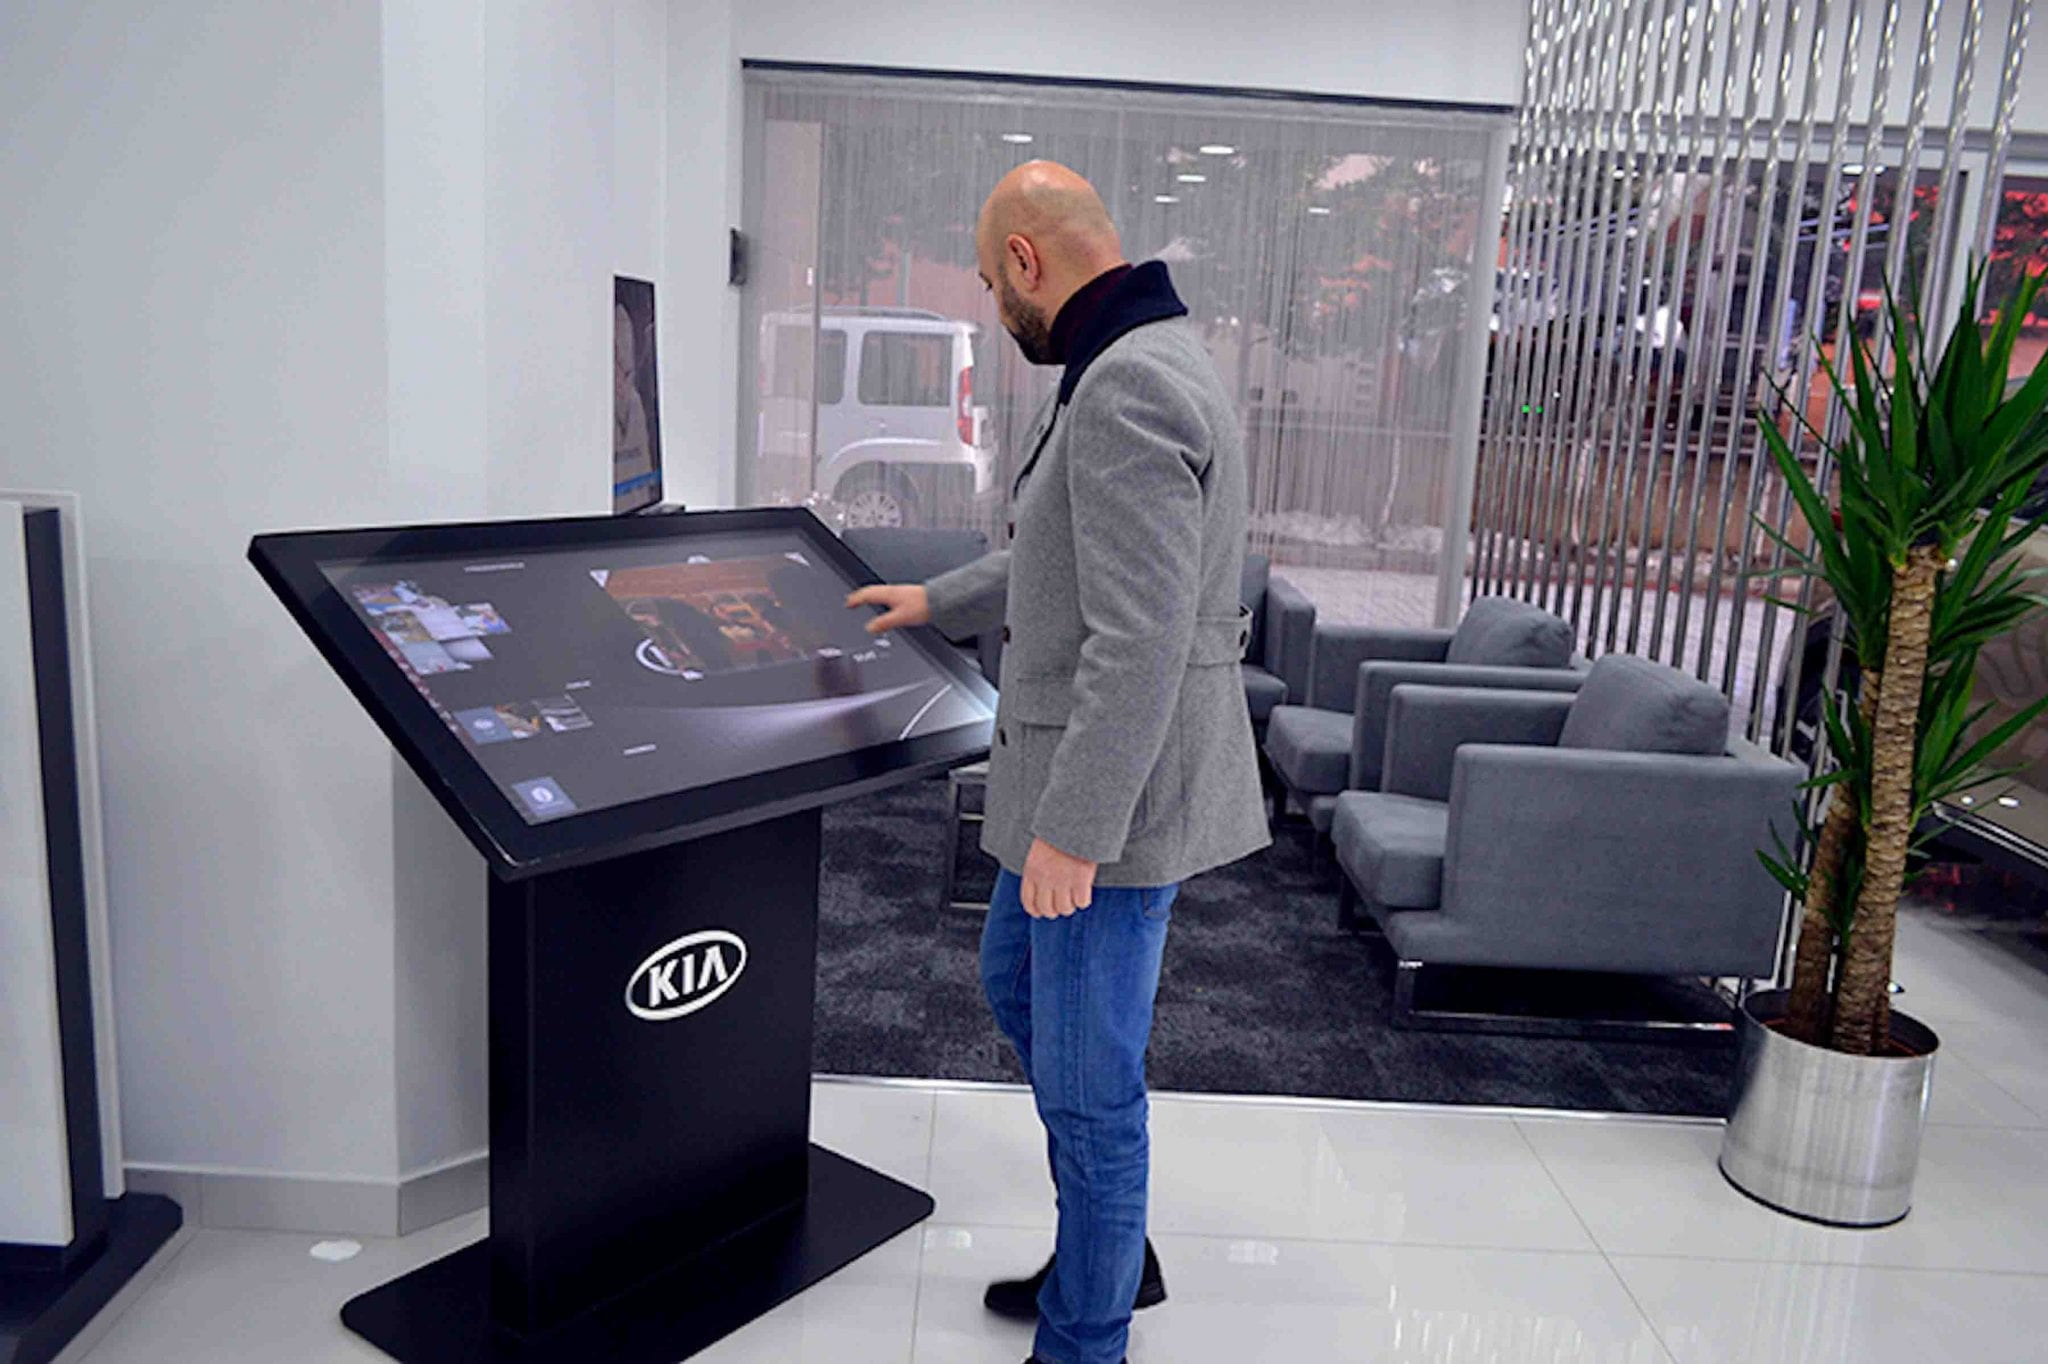 Zytronic touch screen display installed in Kia Dealership